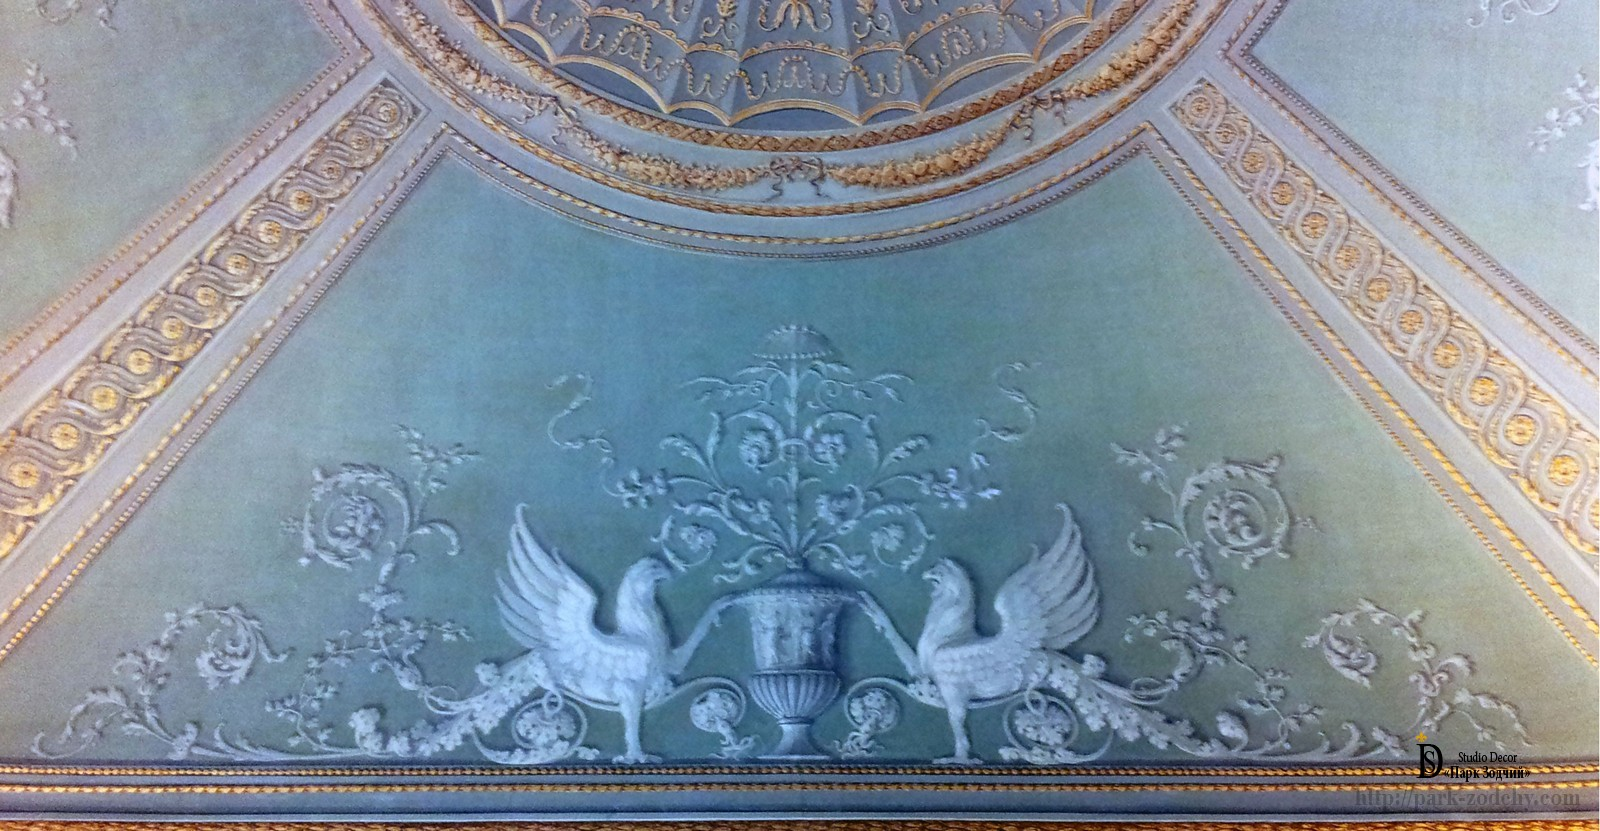 Grisaille technique in painting on the ceiling